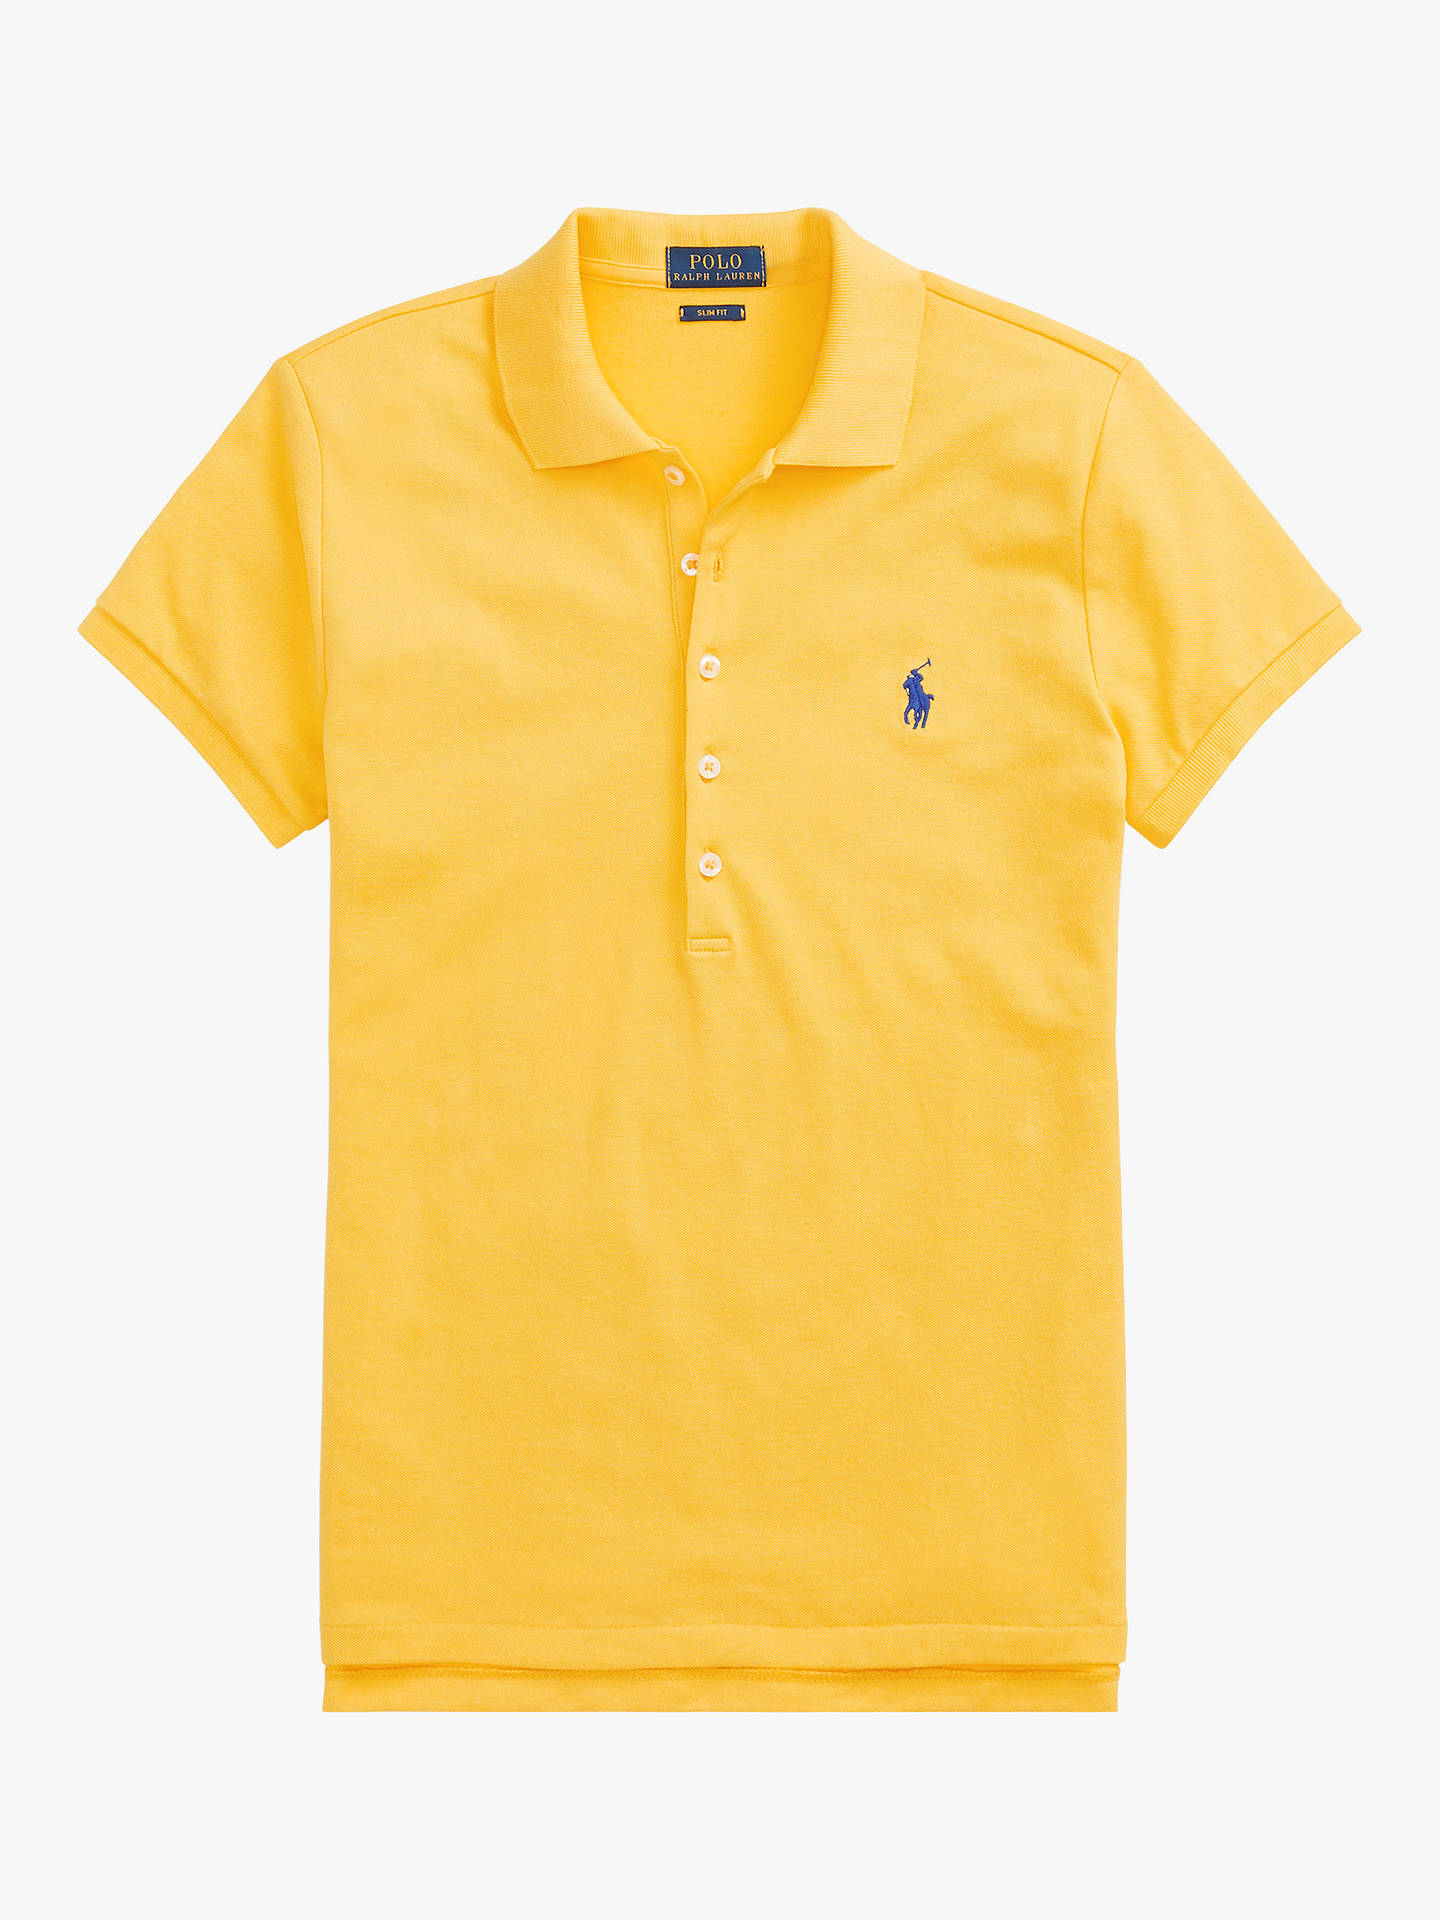 44808f2d7 Buy Polo Ralph Lauren Julie Skinny Fit Stretch Polo Shirt, Yellow, XS  Online at ...